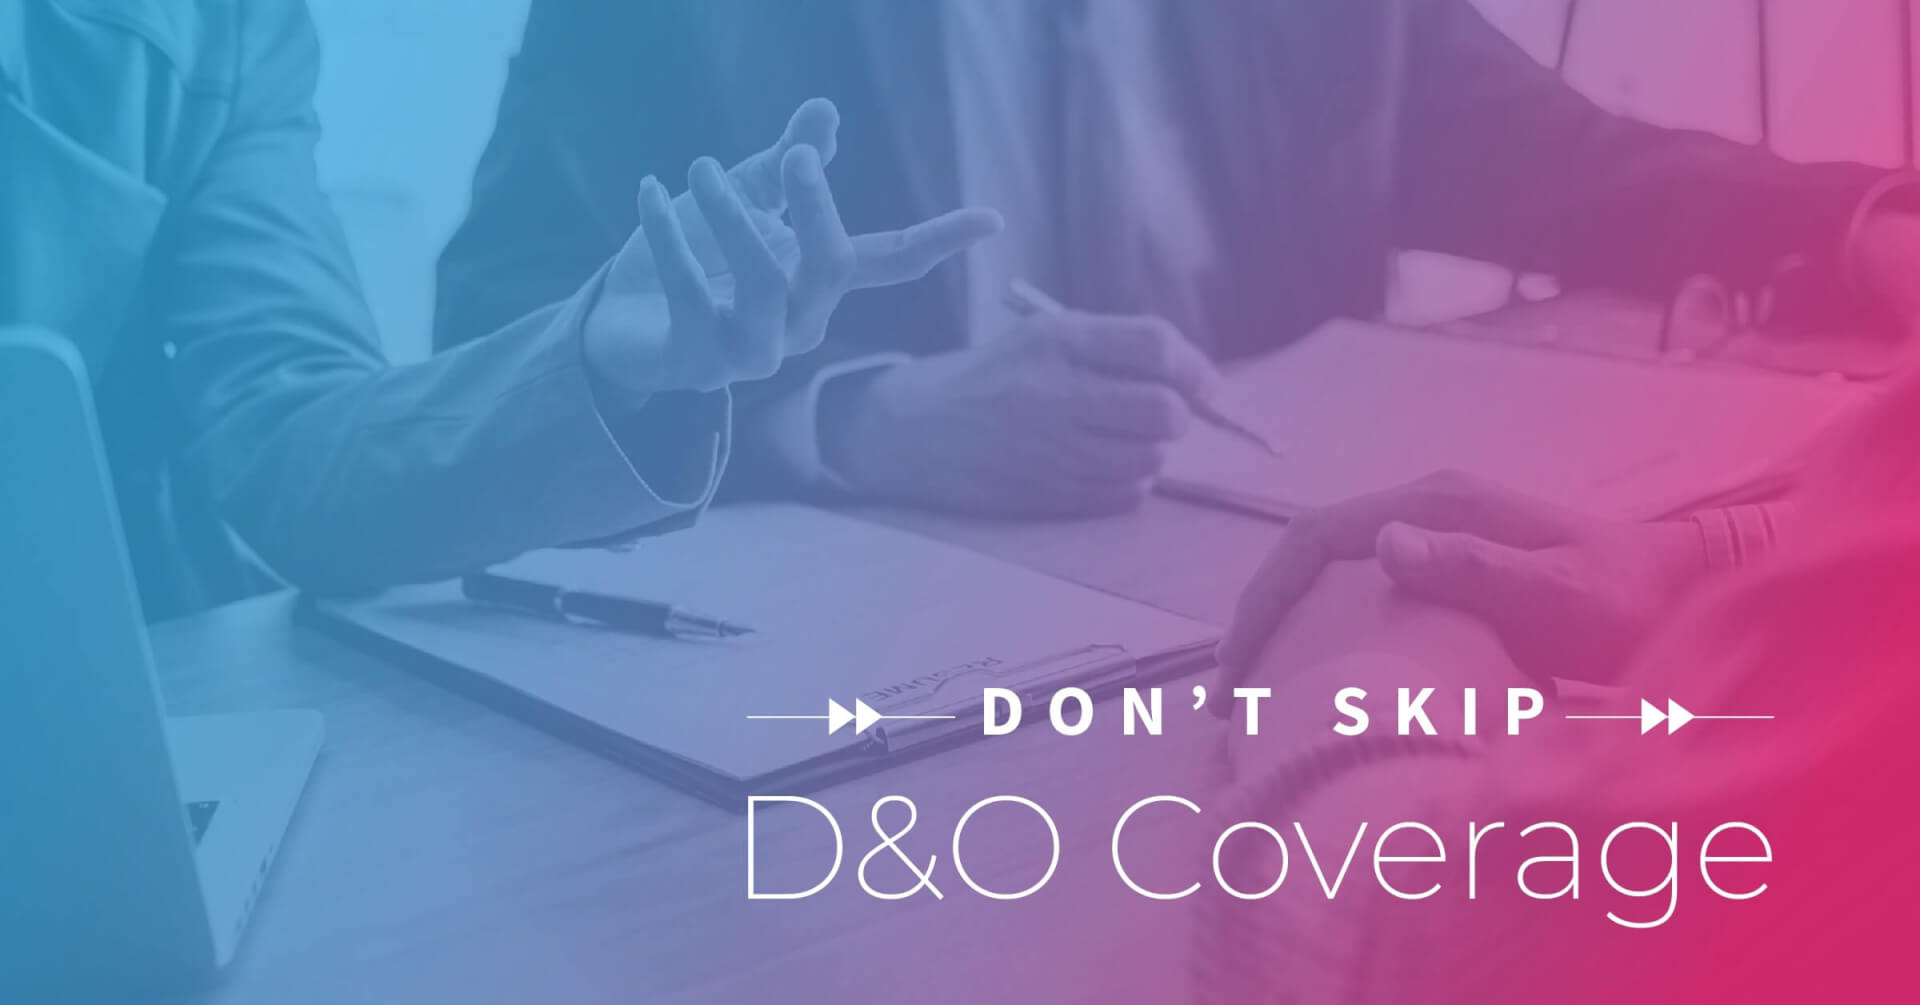 Social Business - Don't Skip D&O Coverage